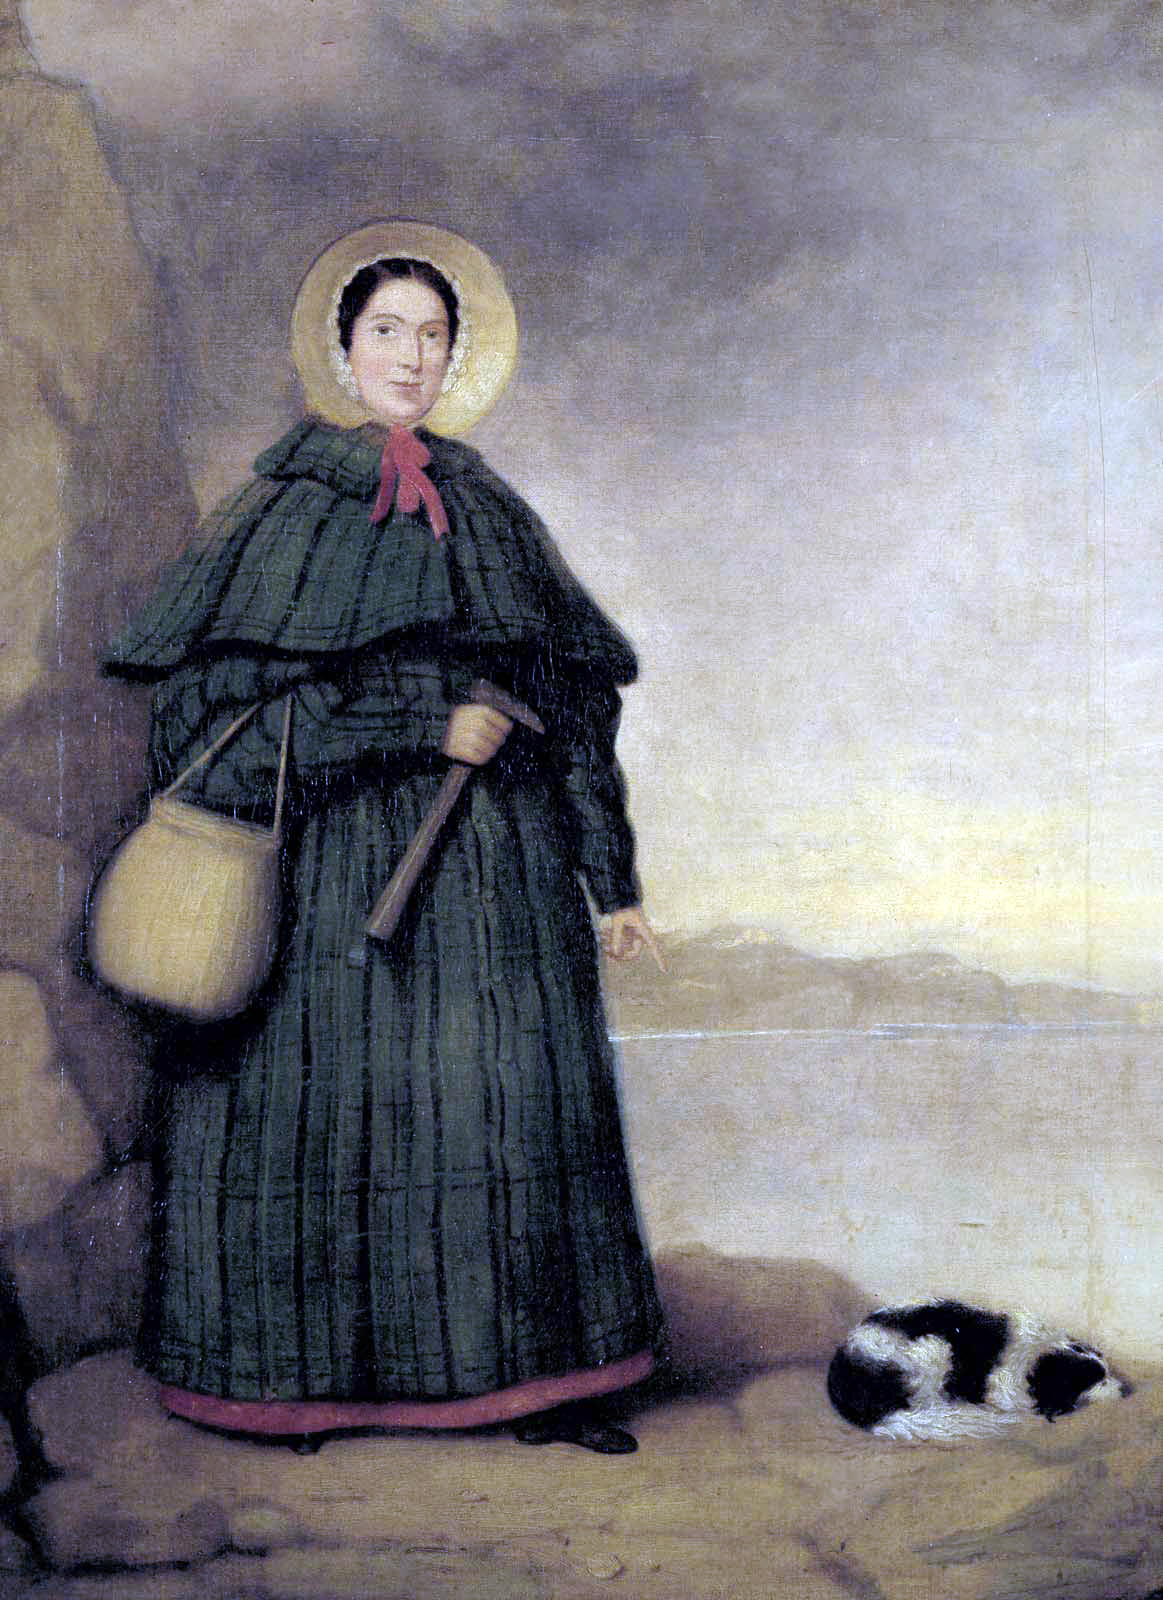 Mary Anning Image